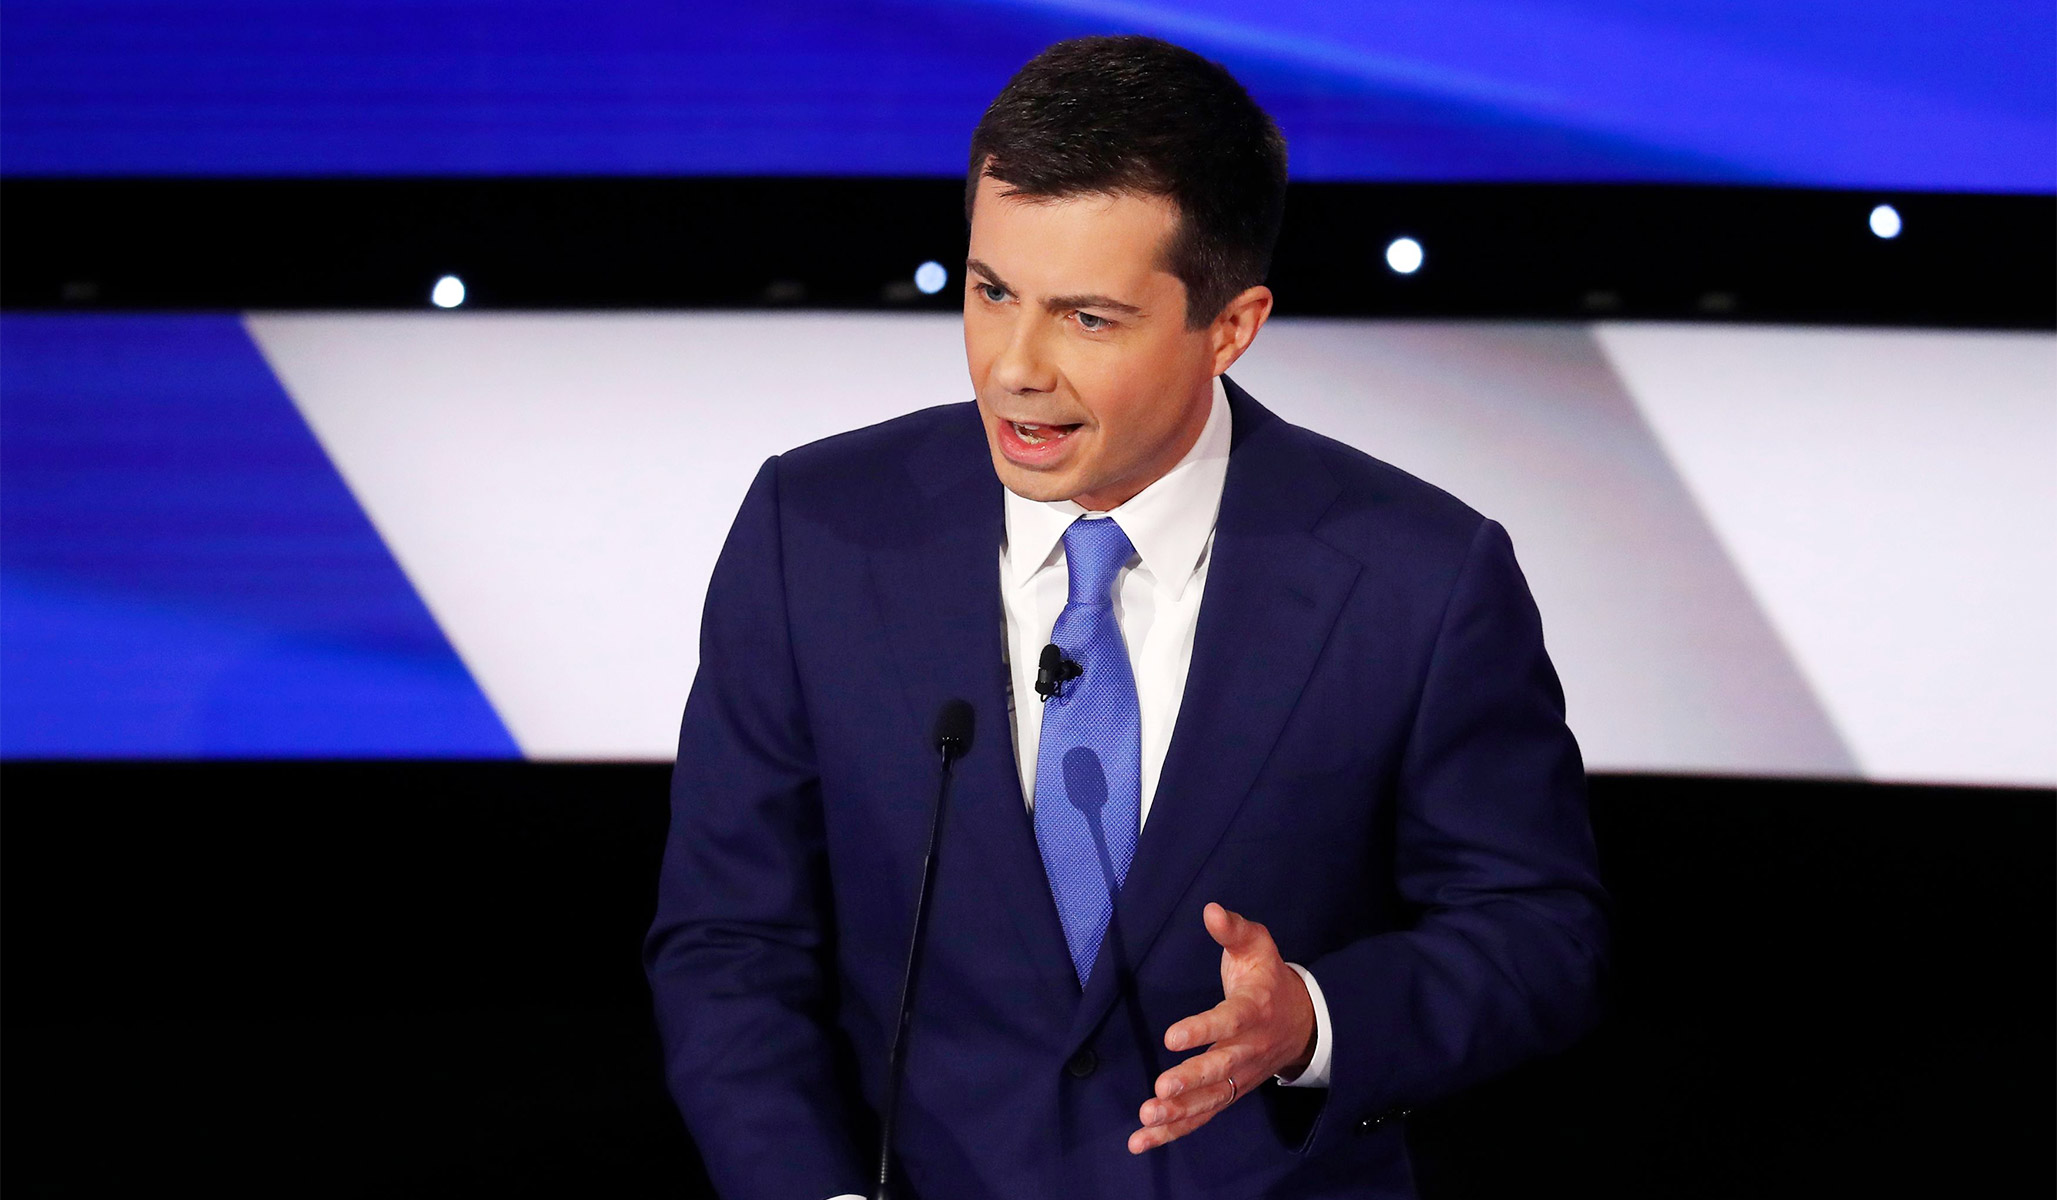 Buttigieg Bristles at 'Bullsh**' Suggestion He Was Involved in 'Corporate Price Fixing' Scandal